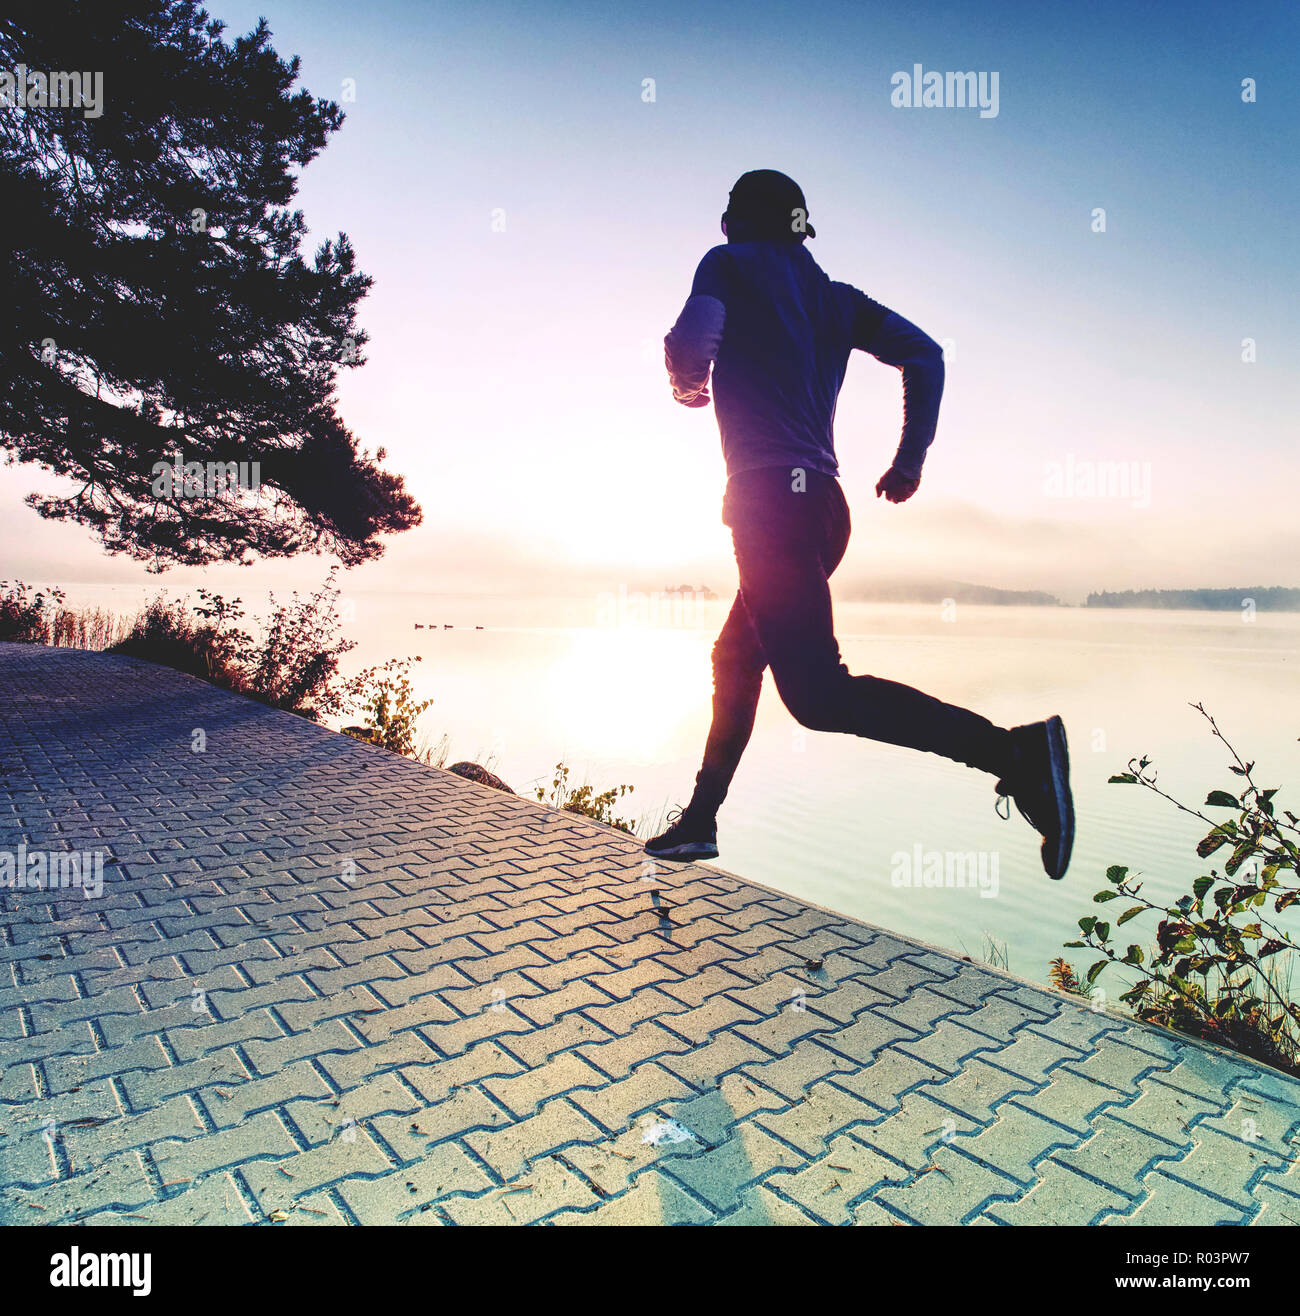 Man running on lake shore pavement during sunrise or sunset - healthy lifestyle concept - Stock Image